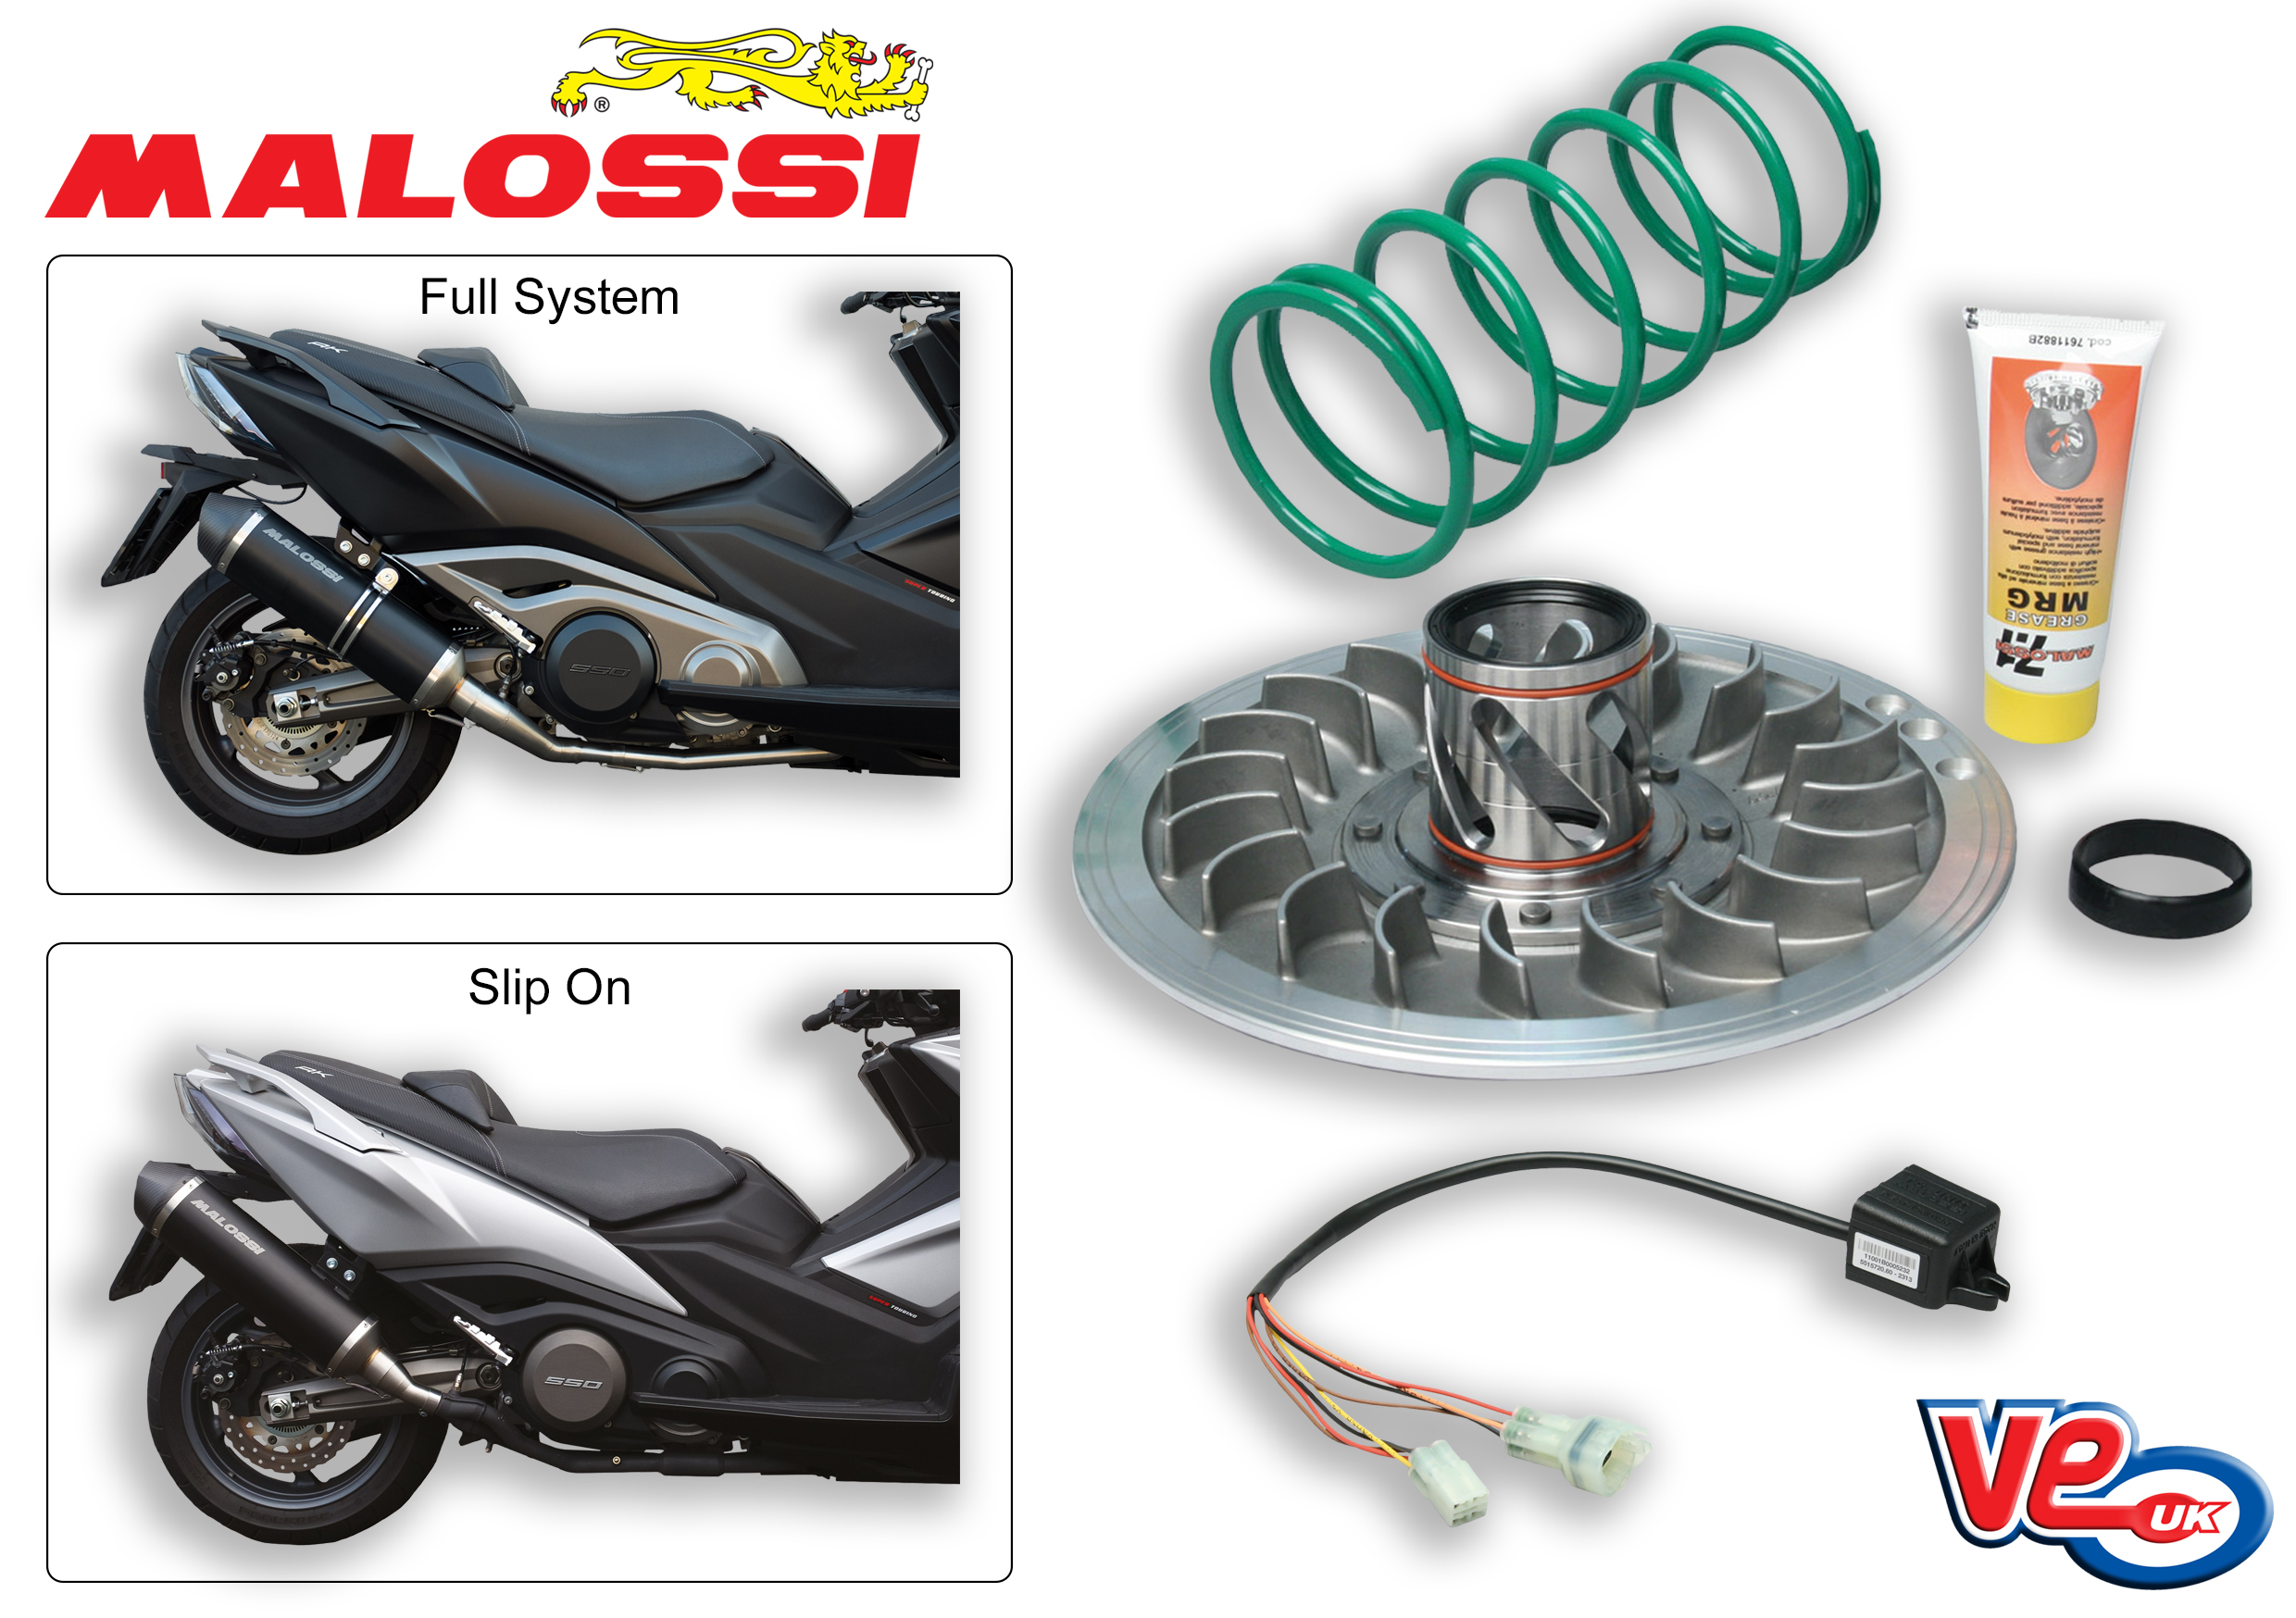 Kymco AK 550 Malossi Tuning Products